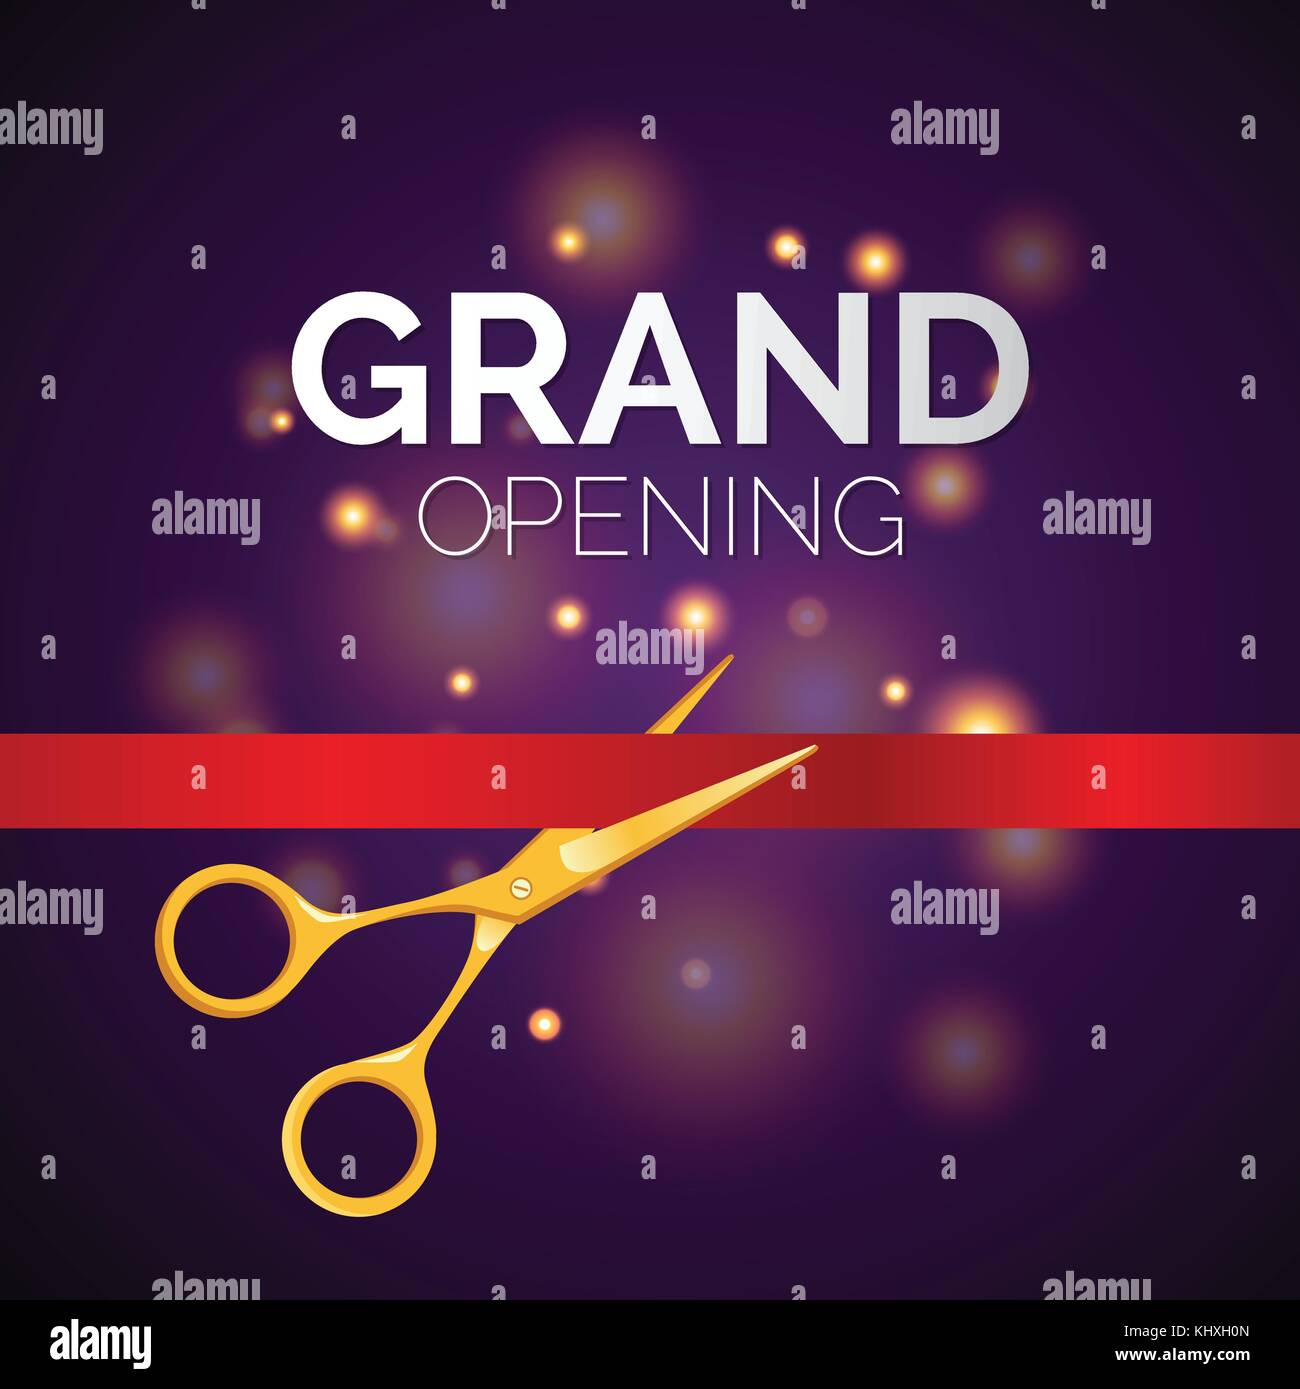 grand opening template modern vector illustration on festive stock